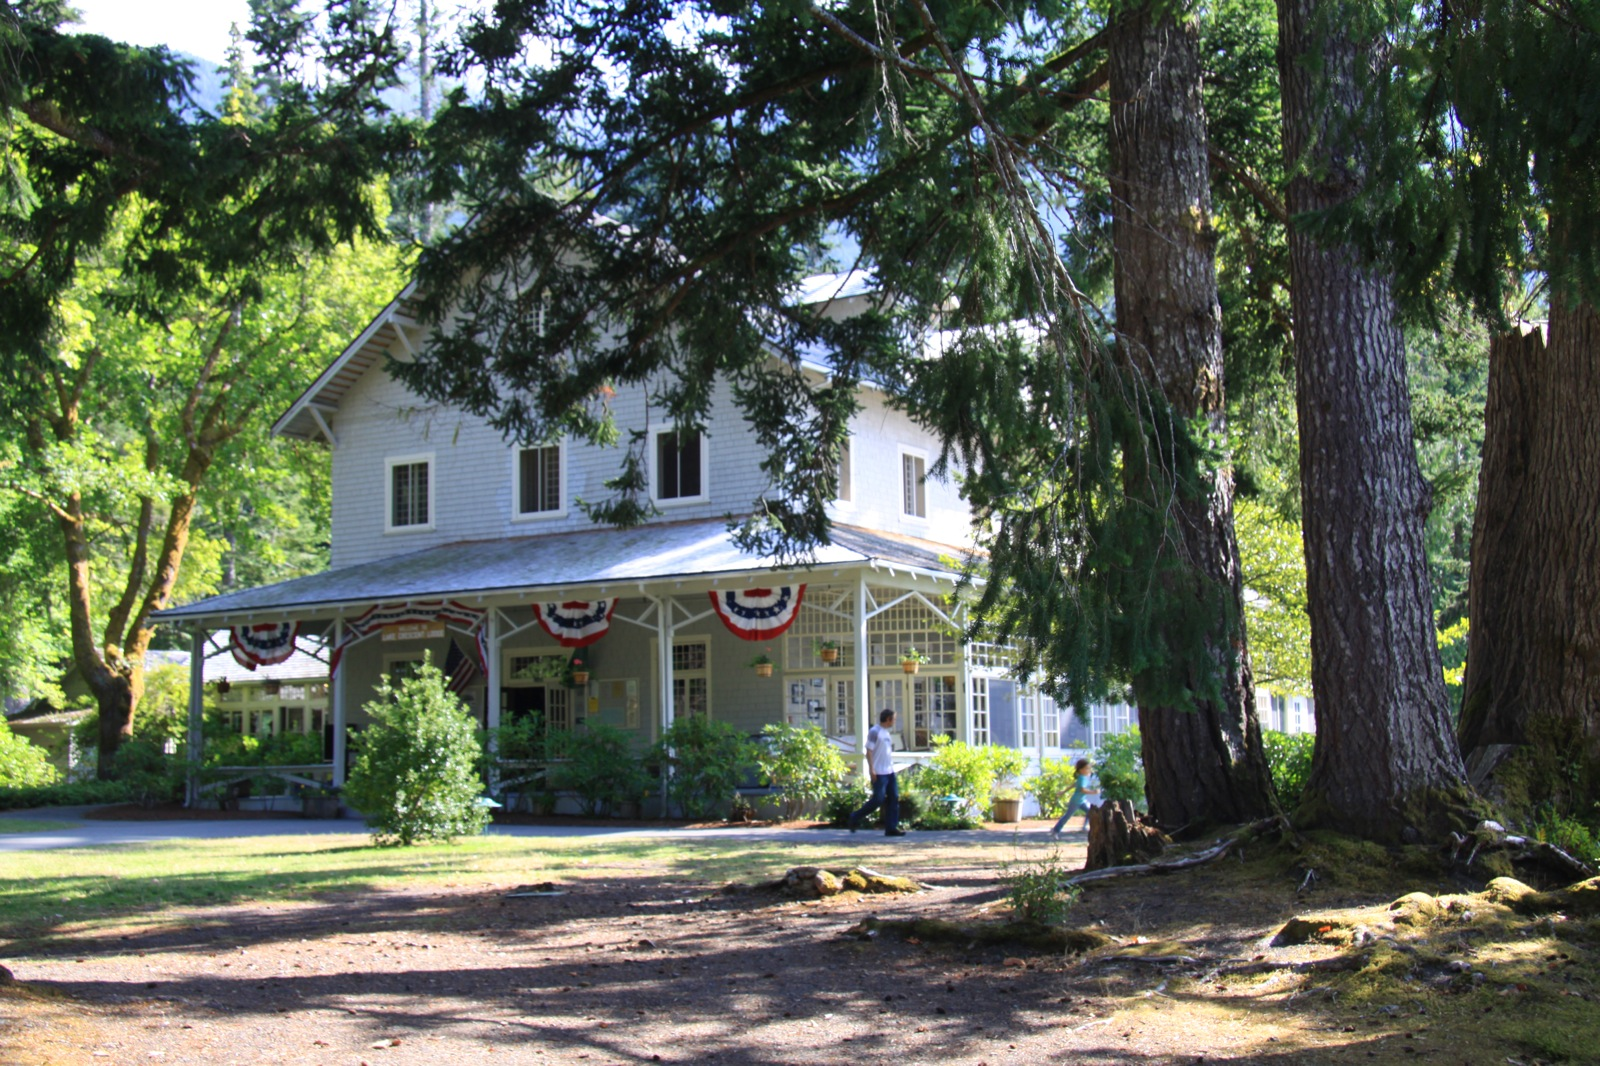 The stunning Crescent Lake Lodge is a large, old, wooden building surrounded by the giant trees of Olympic National Park.